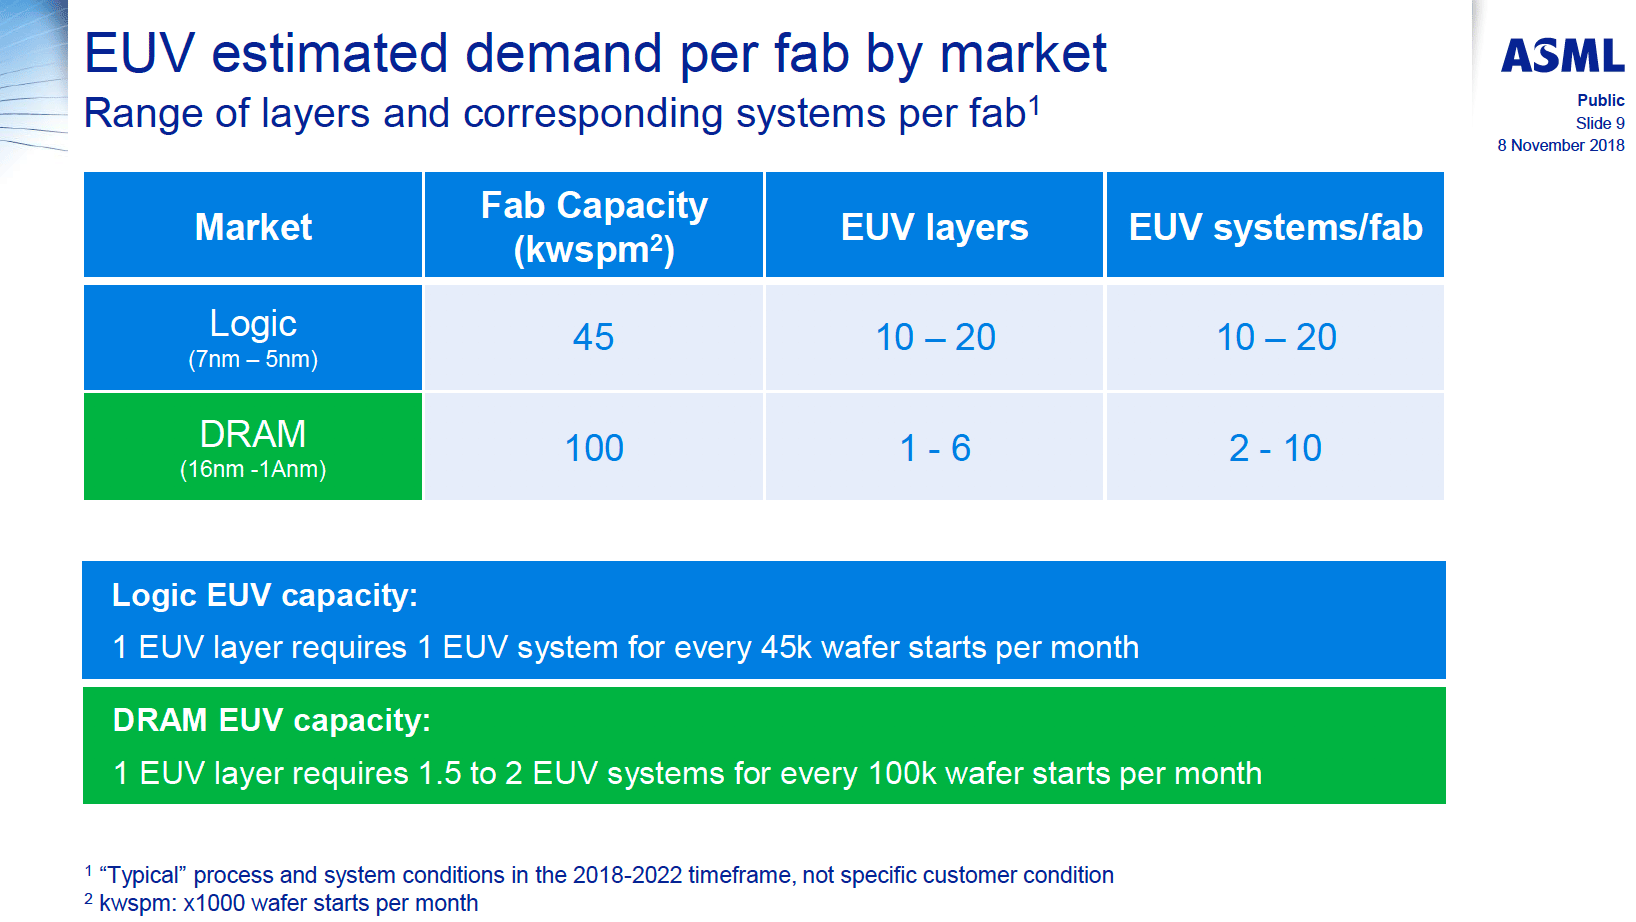 ASML to Ship 30 EUV Scanners in 2019: Faster EUV Tools Coming